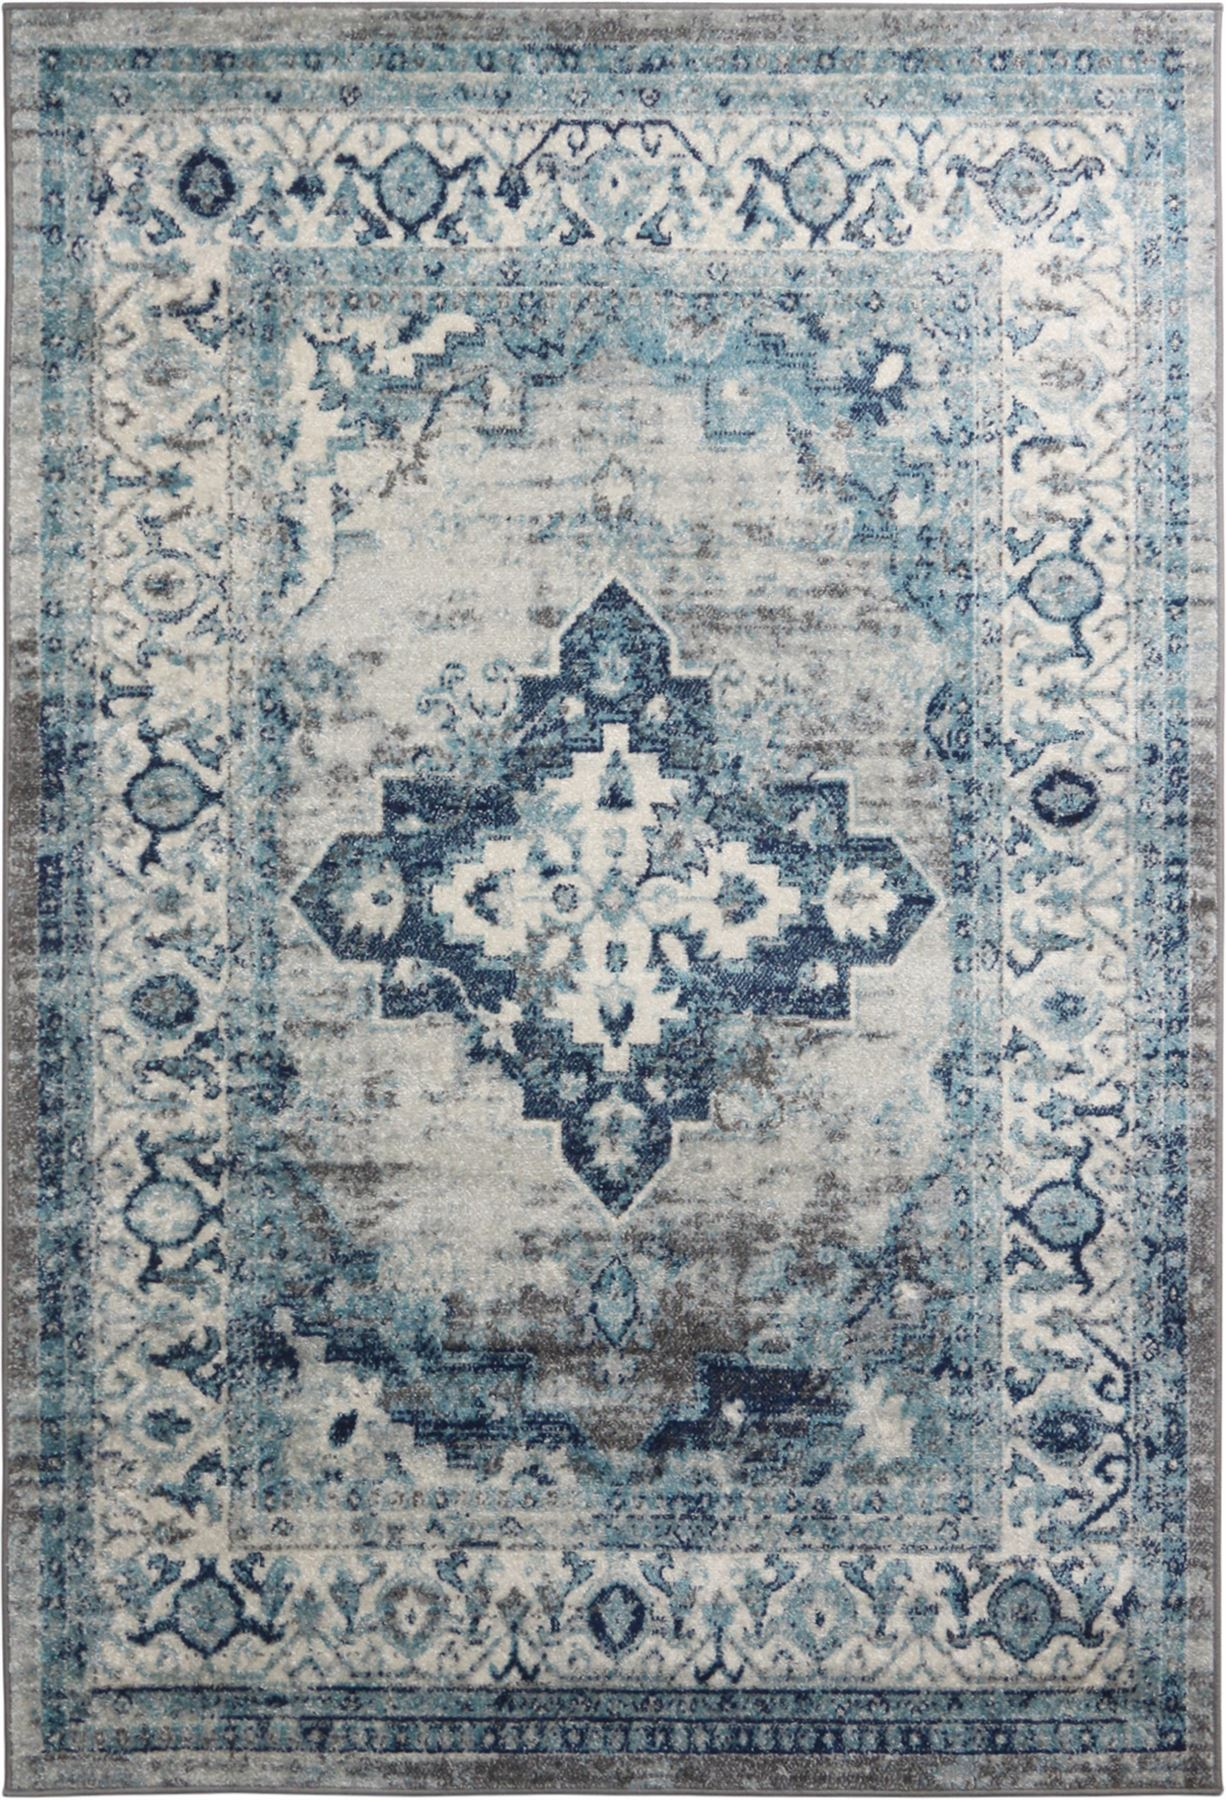 Large-Quality-Traditional-Area-Rug-Assorted-Persian-Floral-Designs-Carpet-Runner thumbnail 79